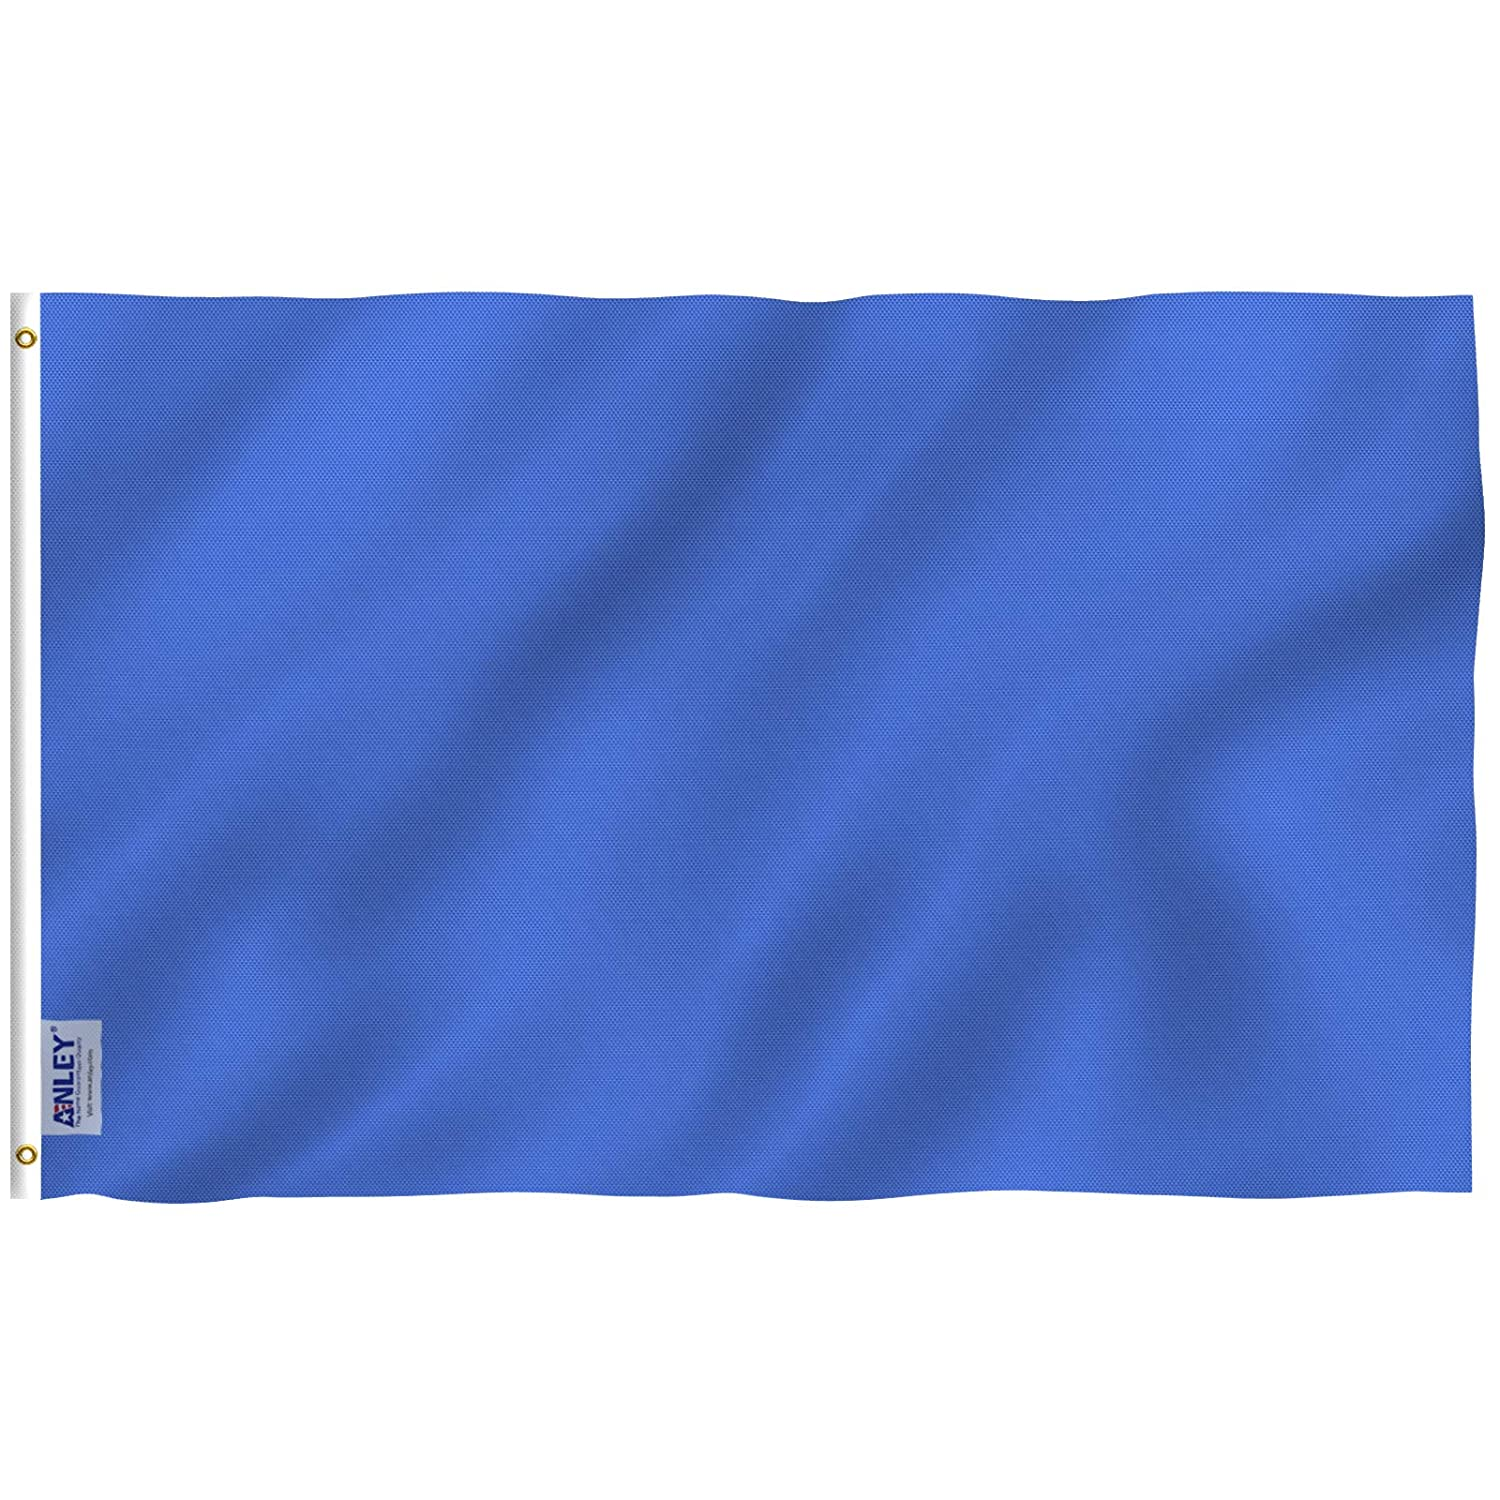 Anley Fly Breeze 3x5 Foot Solid Navy Blue Flag - Vivid Color and UV Fade Resistant - Canvas Header and Double Stitched - Plain Royal Blue Flags Polyester with Brass Grommets 3 X 5 Ft